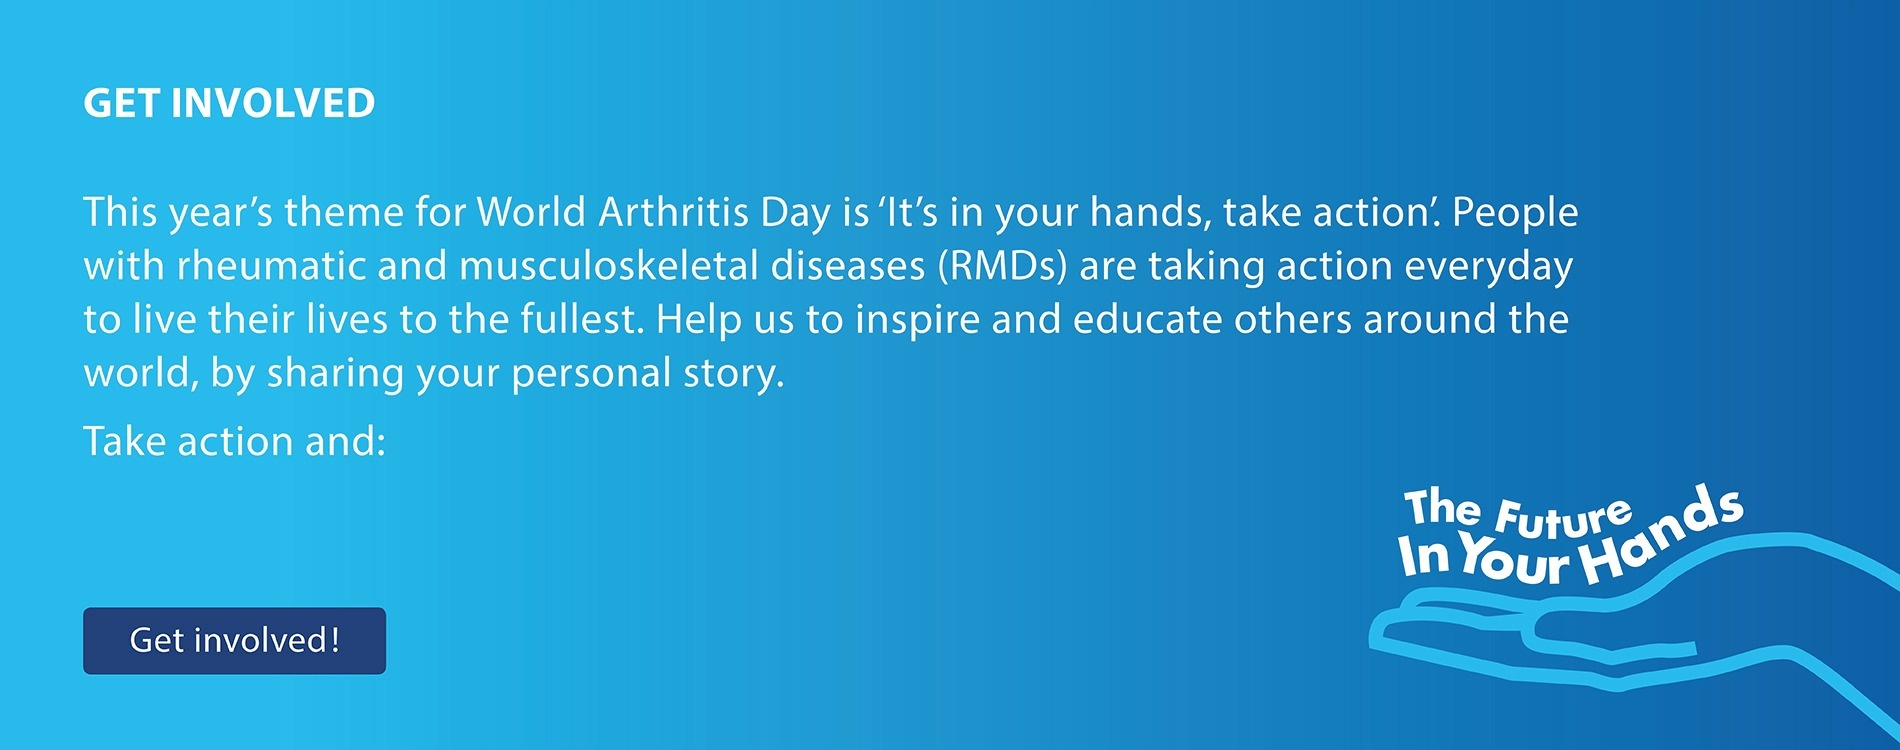 World Arthritis Day 2016